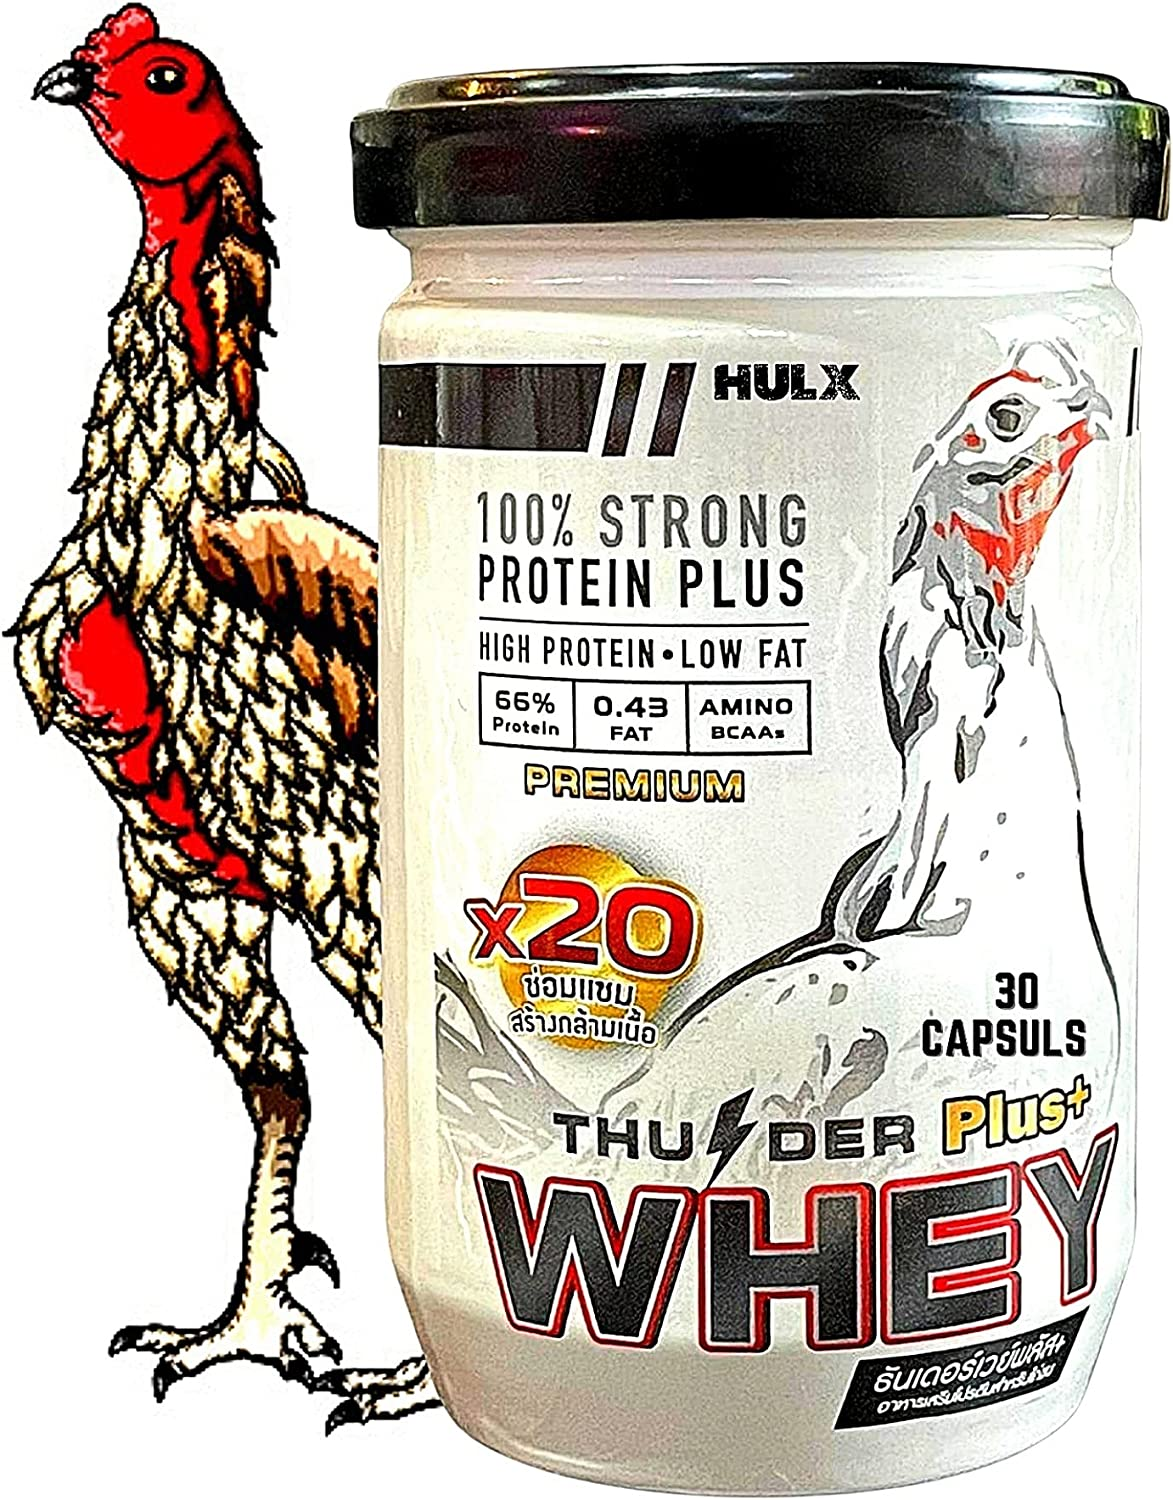 New X3 Bargain Faster 30 Capsules WHEY Rooster Max 81% OFF 68% Vita Protein Booster